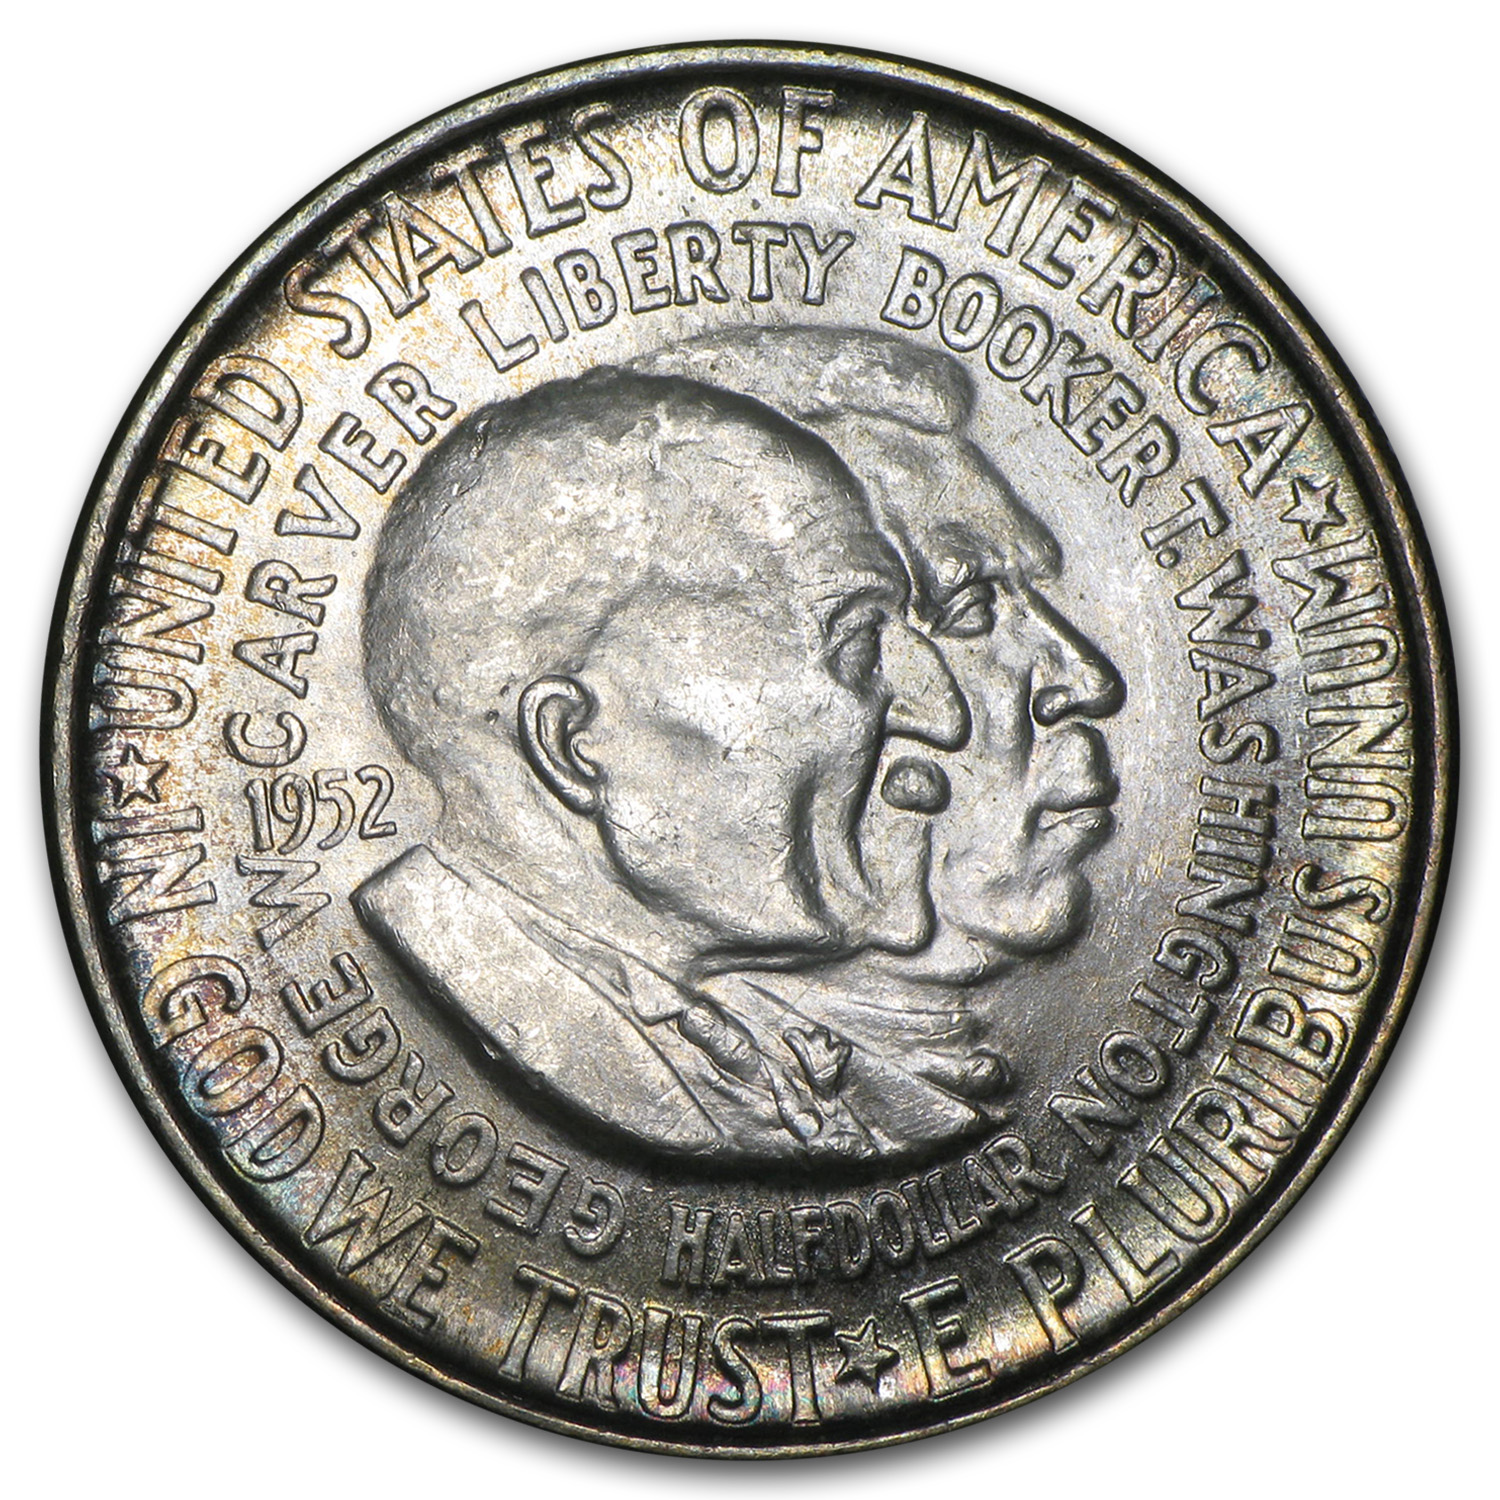 1952 Washington-Carver Half Dollar MS-65